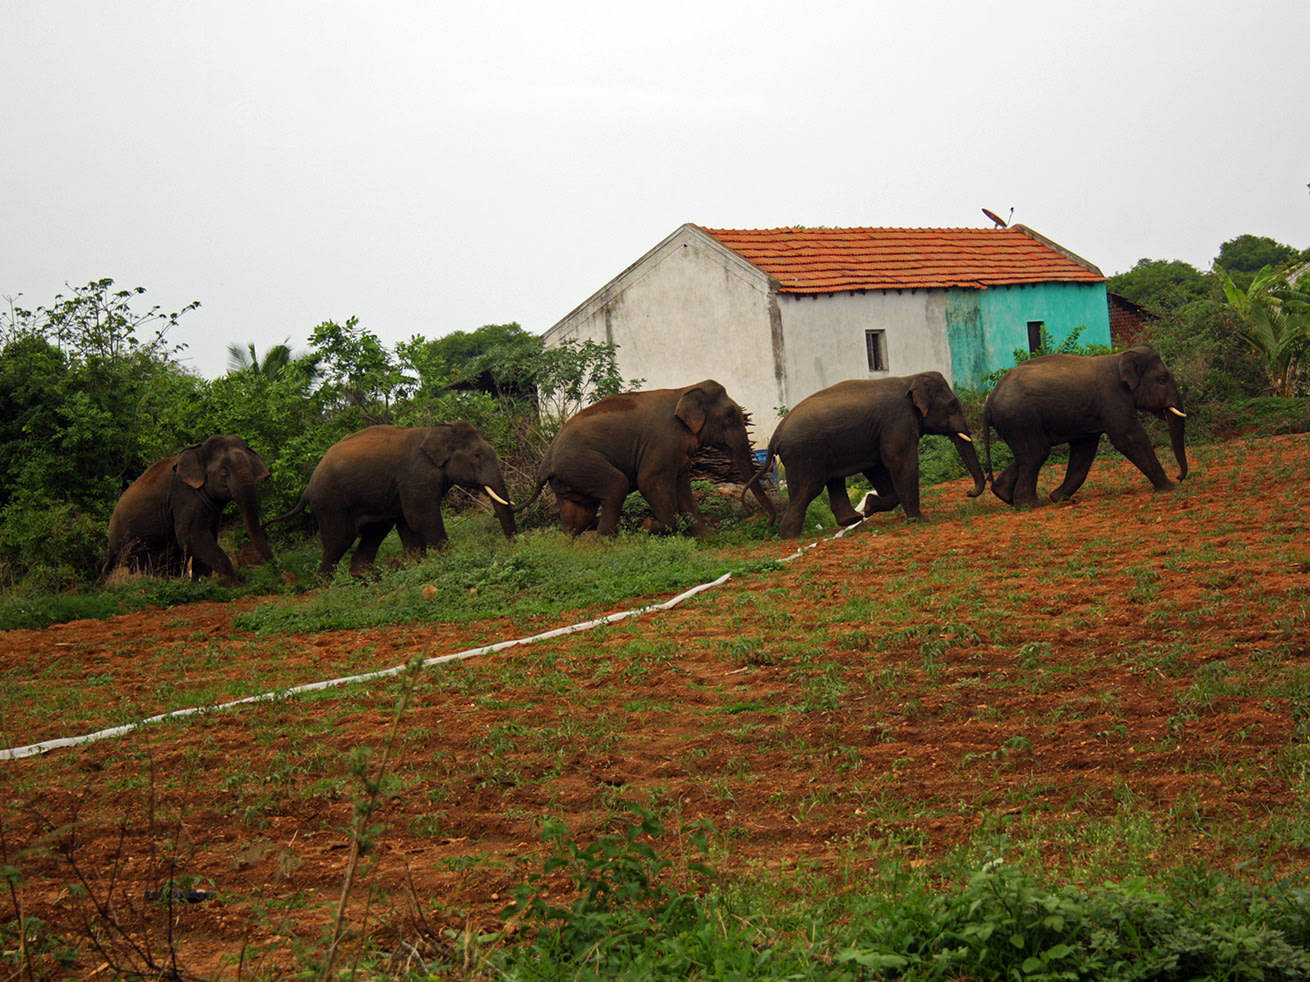 An all-male group of elephants nonchalantly moves through a farm. Photo: Vinod Moses